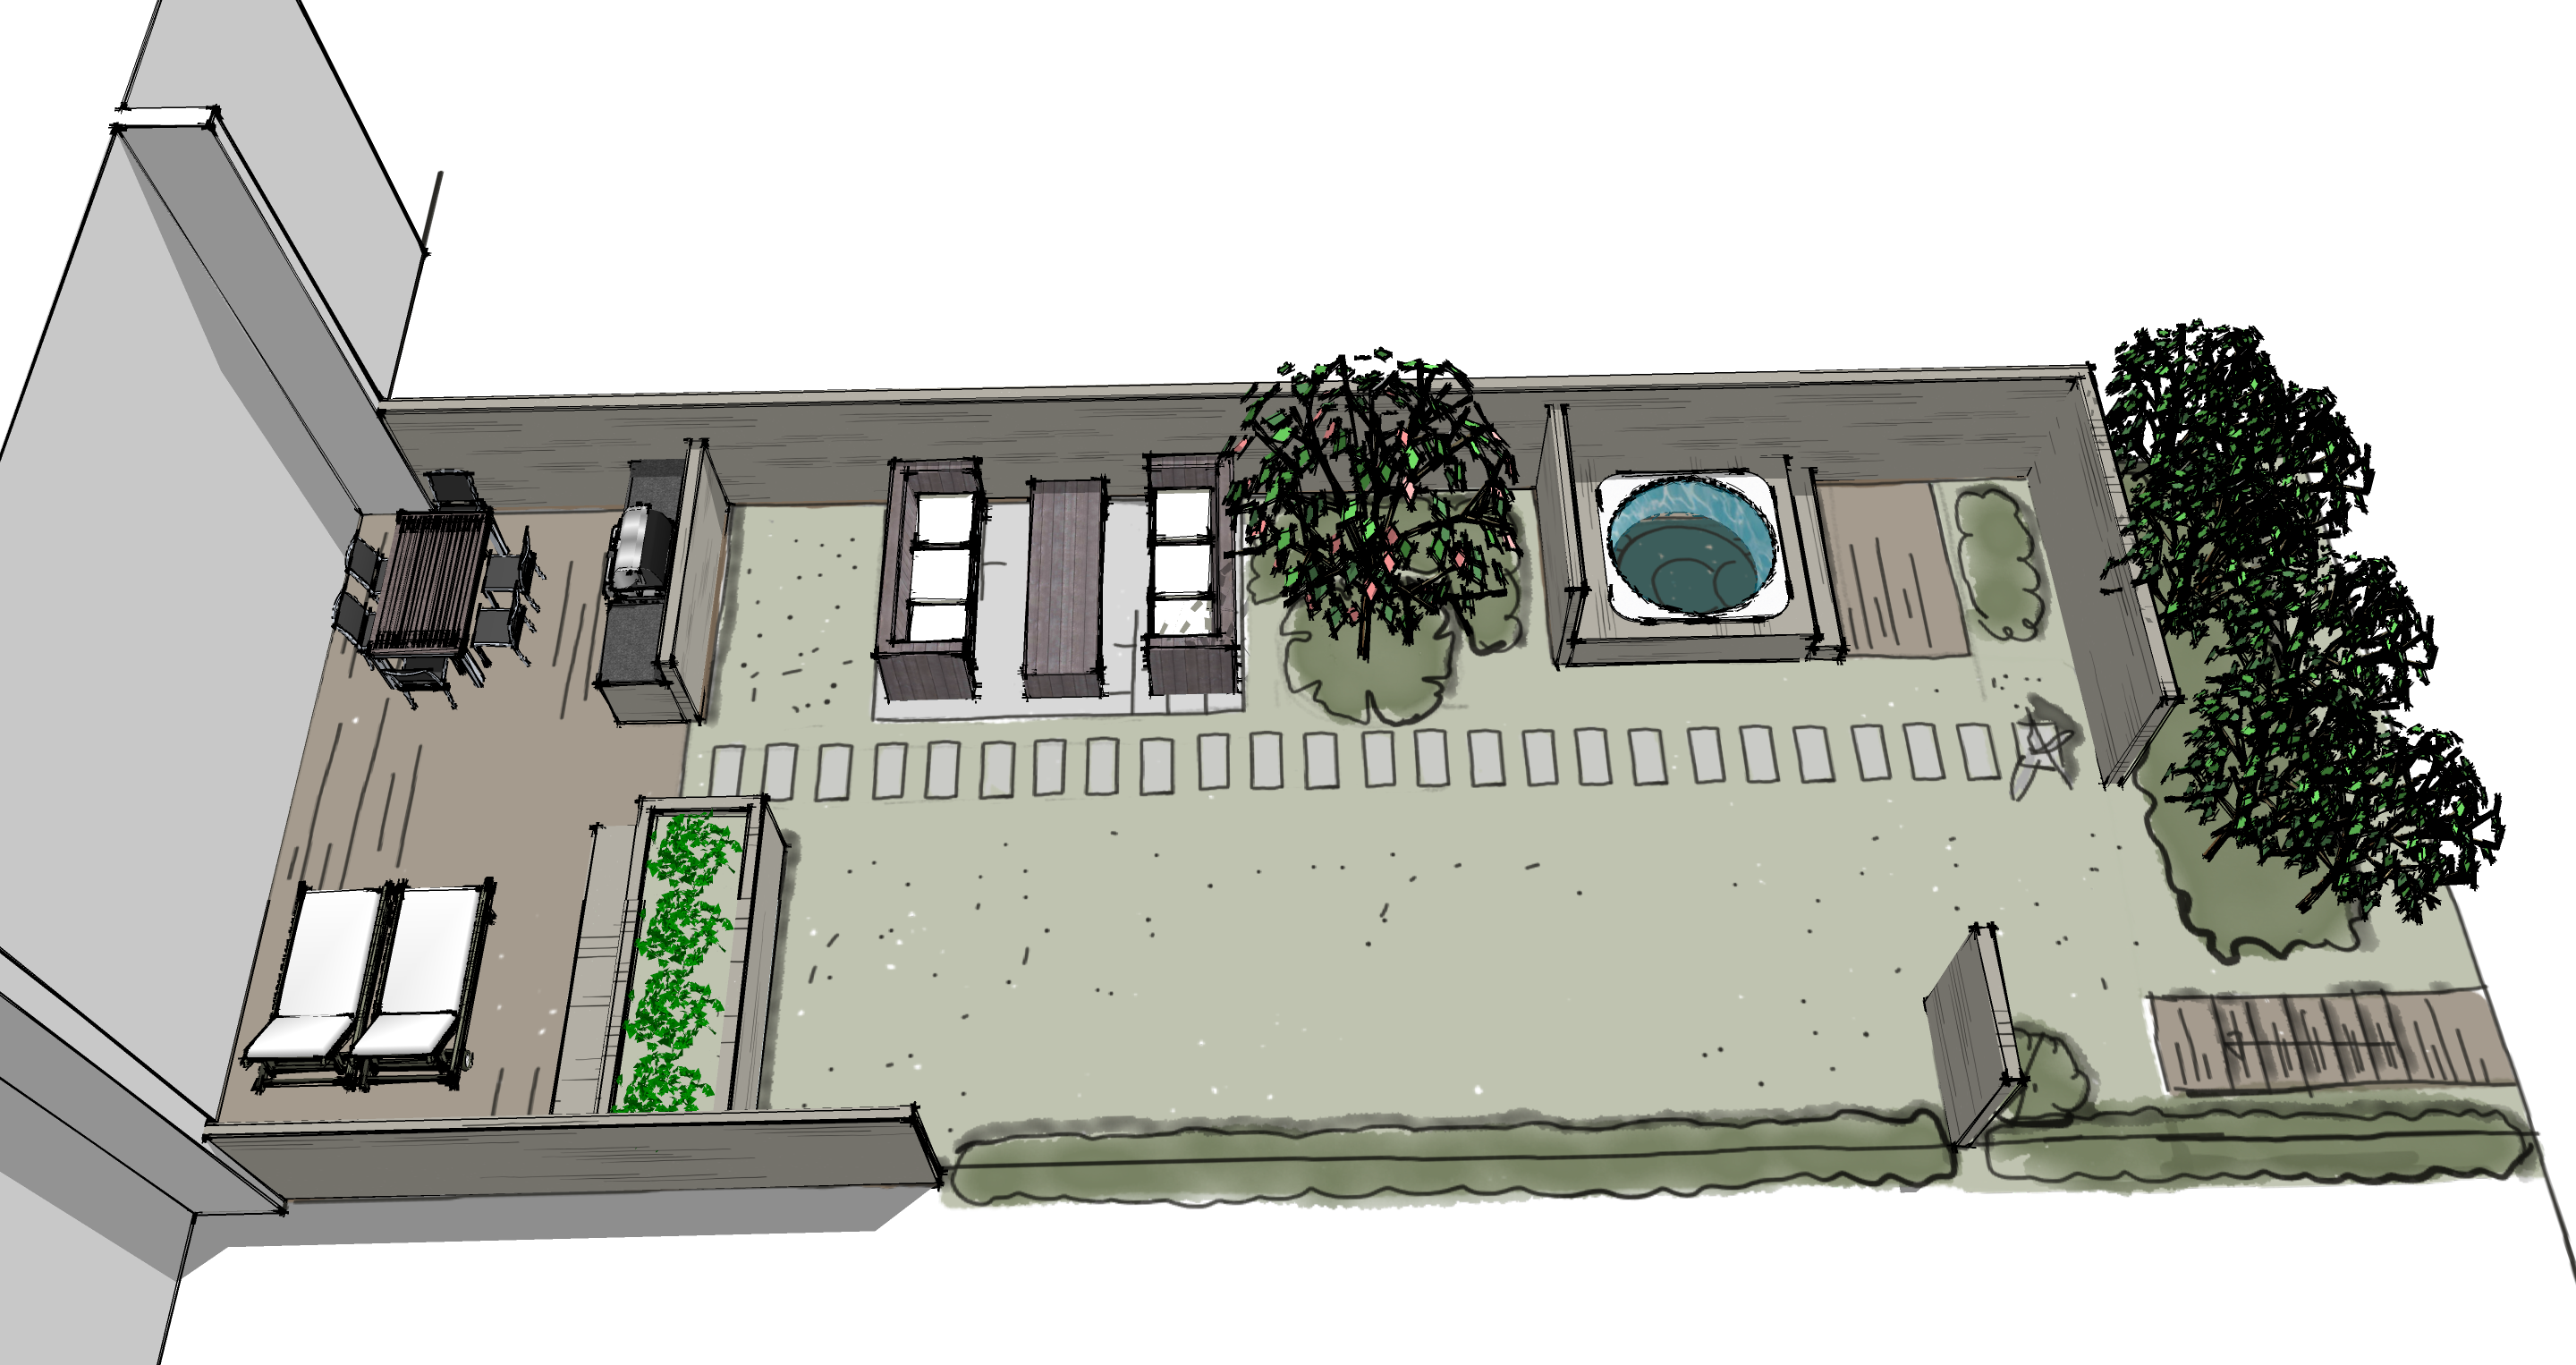 A narrow Scandinavian row house garden designed with Sketchup